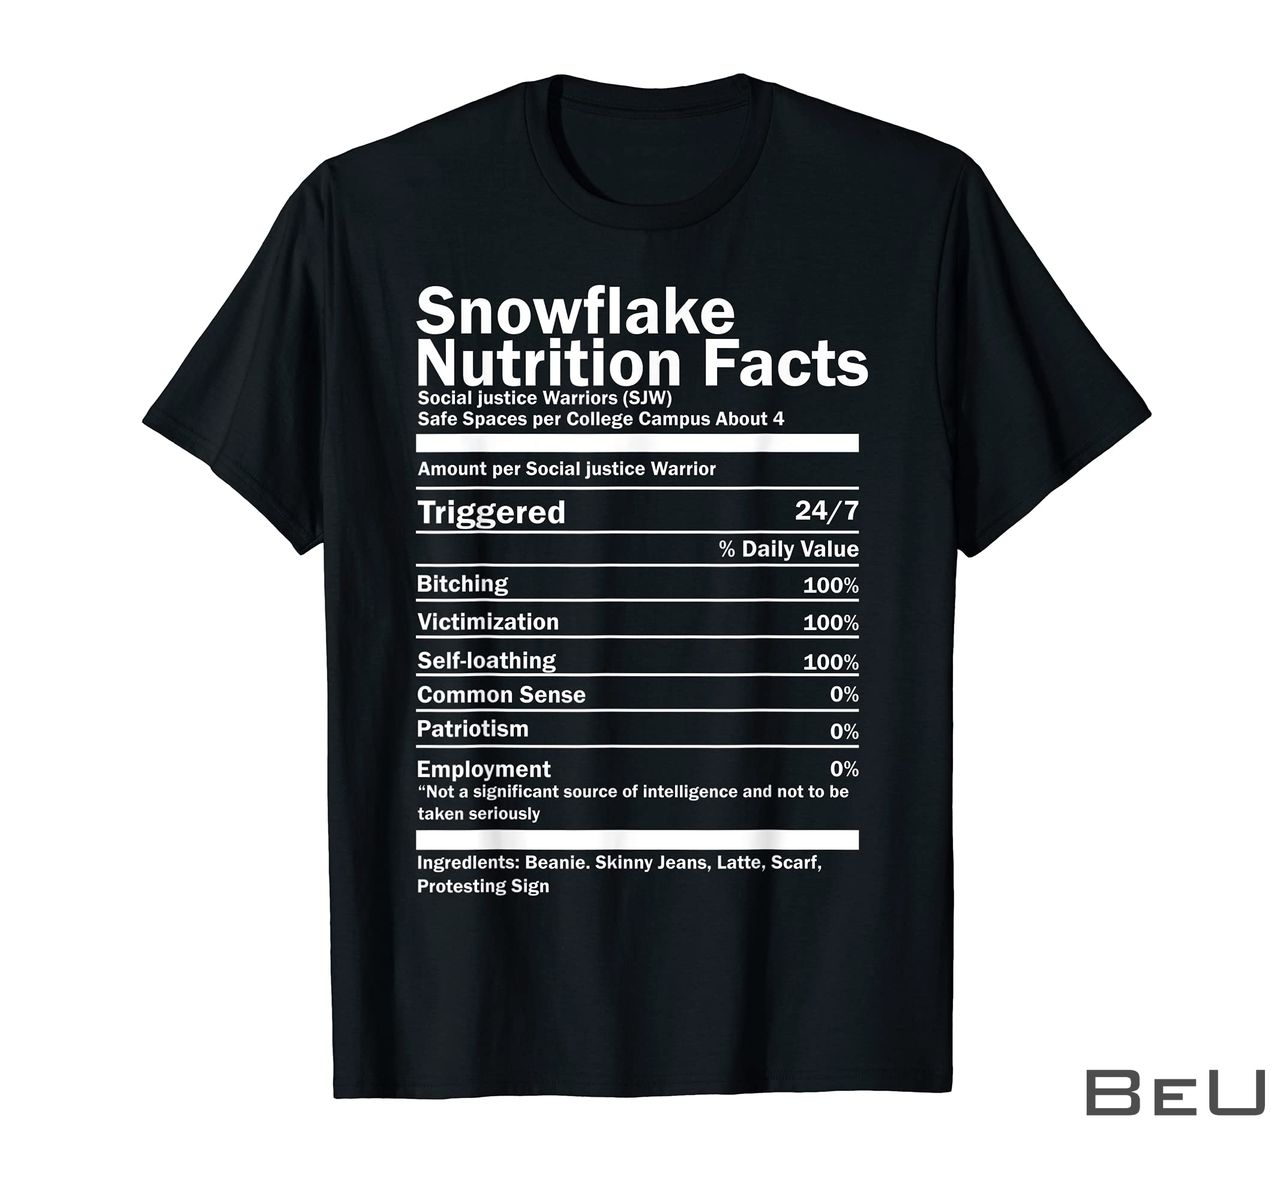 Snowflake Nutrition Facts Shirt